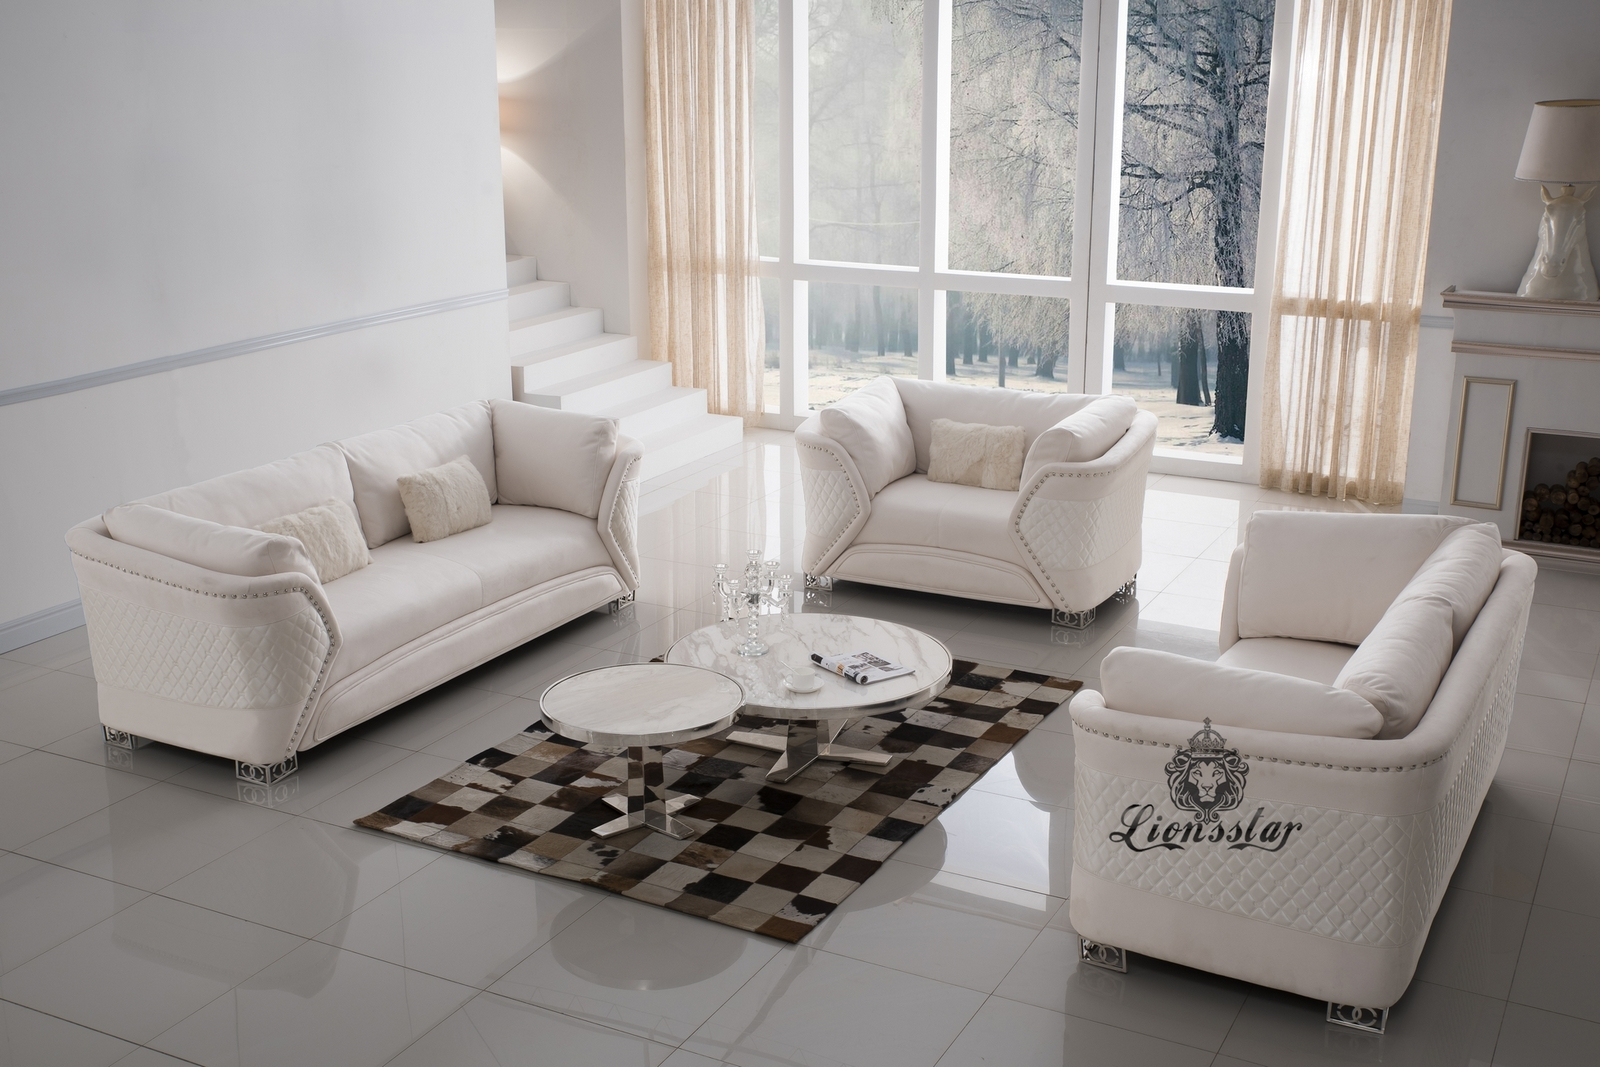 Luxuriöse Designersofa 3er Set